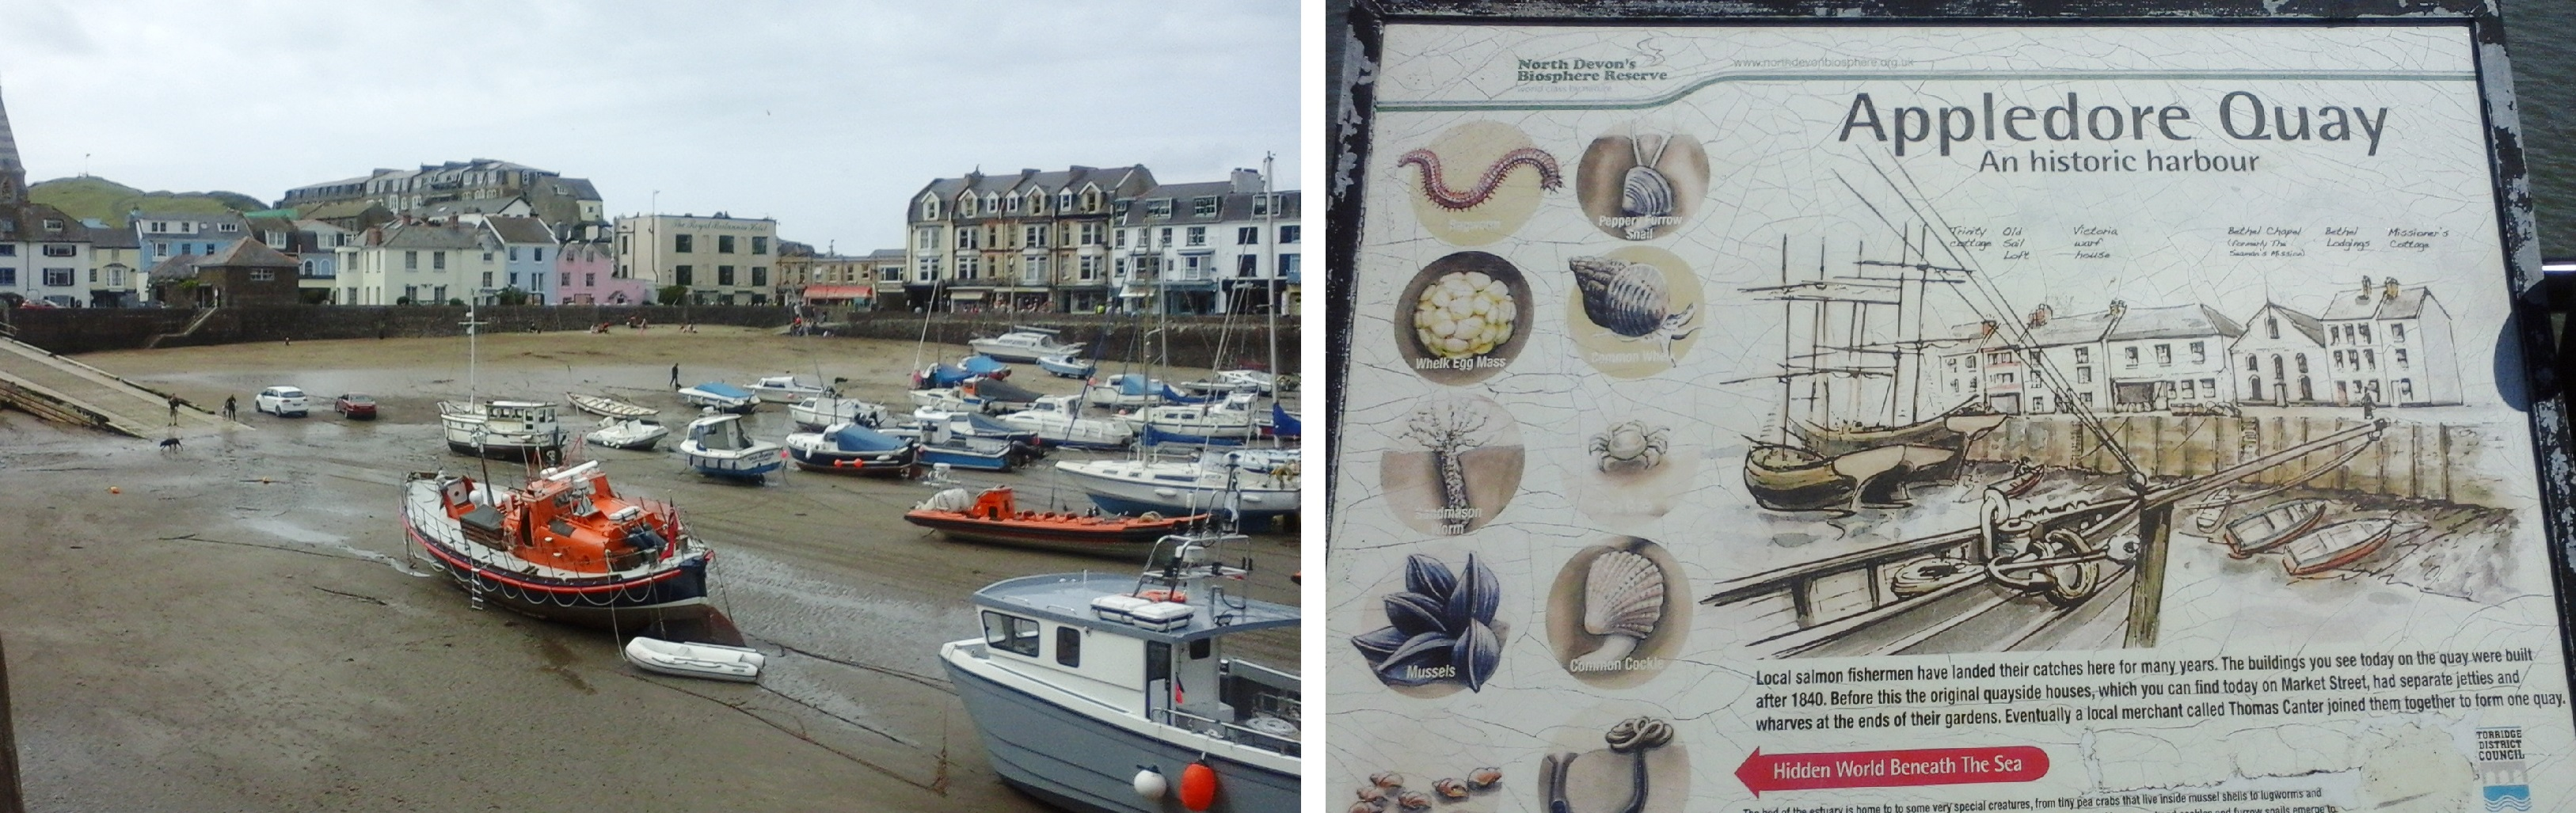 Ifracombe harbour, left, and cultural values of Appledore Quay